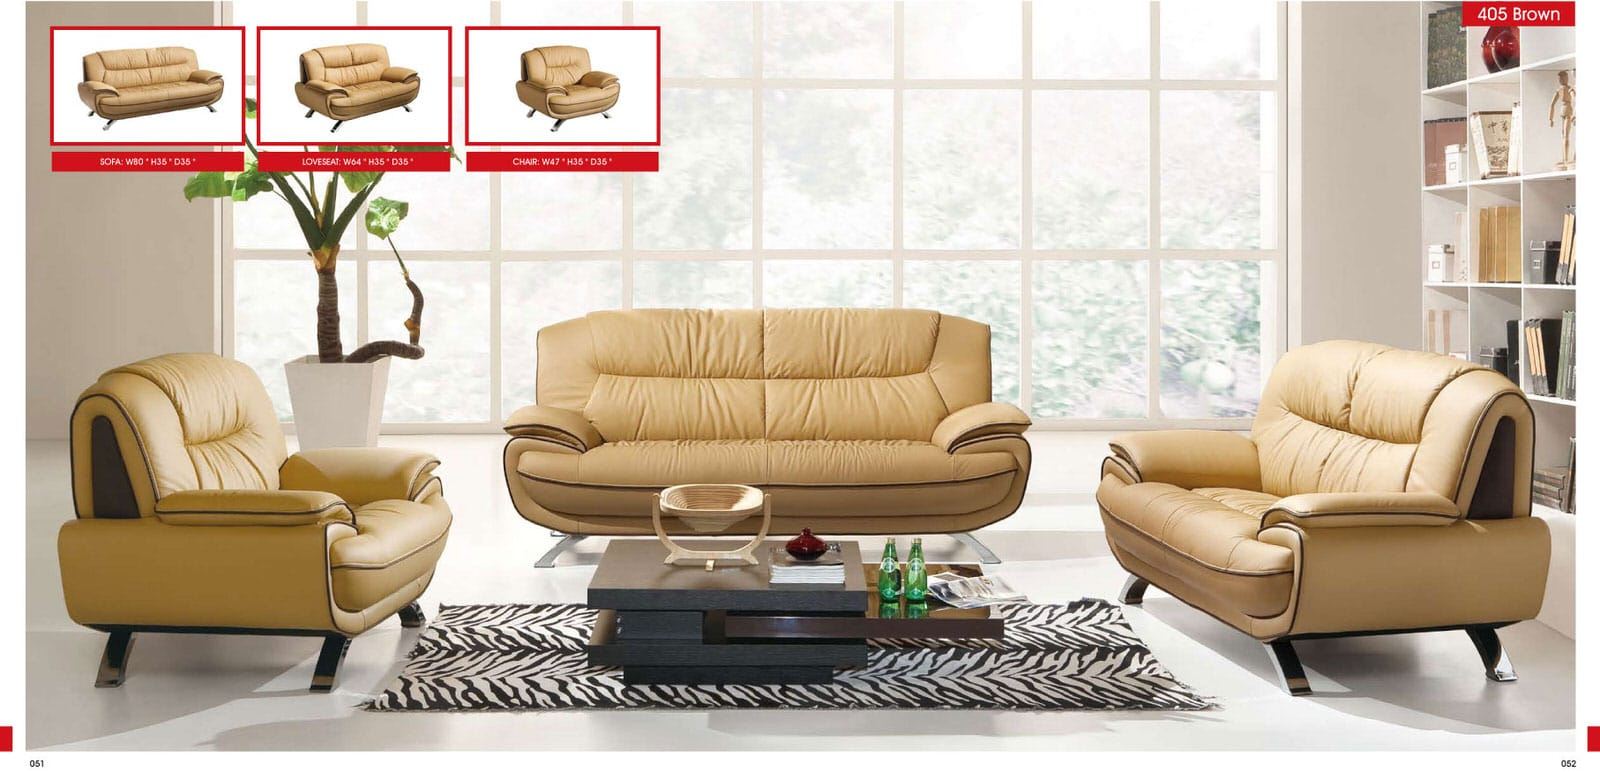 405 brown leather sofa set by esf for Living room chairs